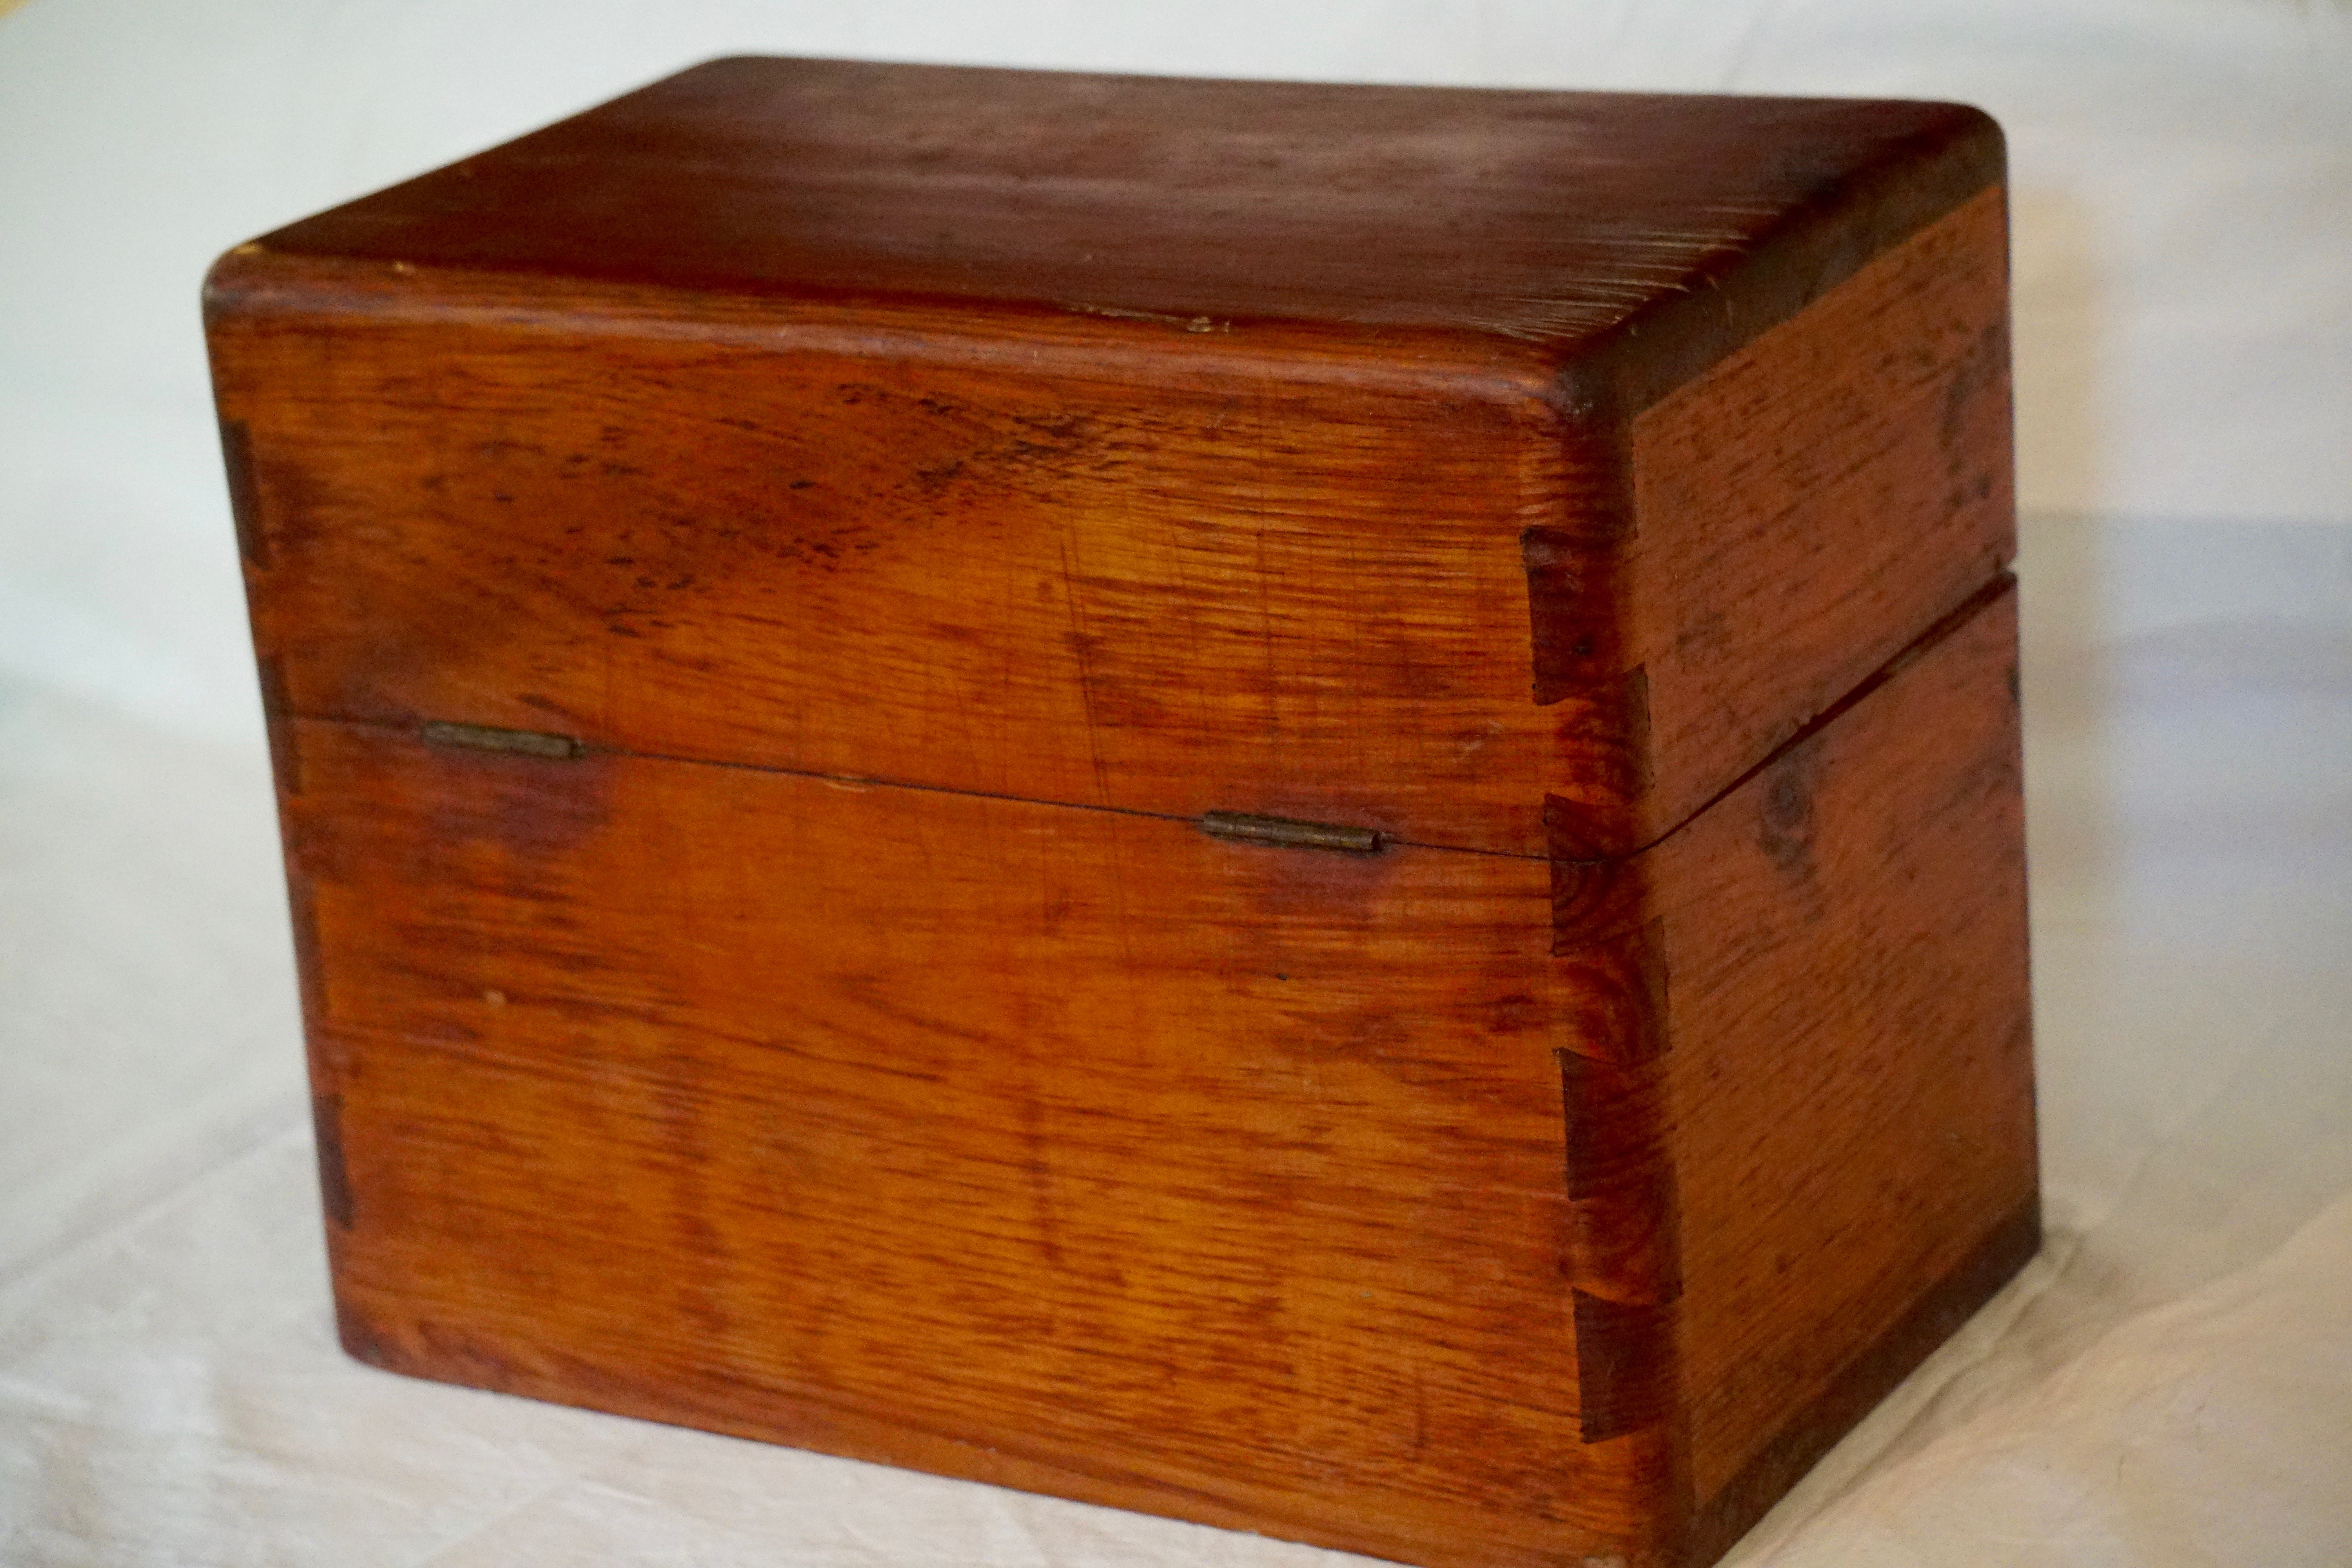 Breadfruit wood latched box